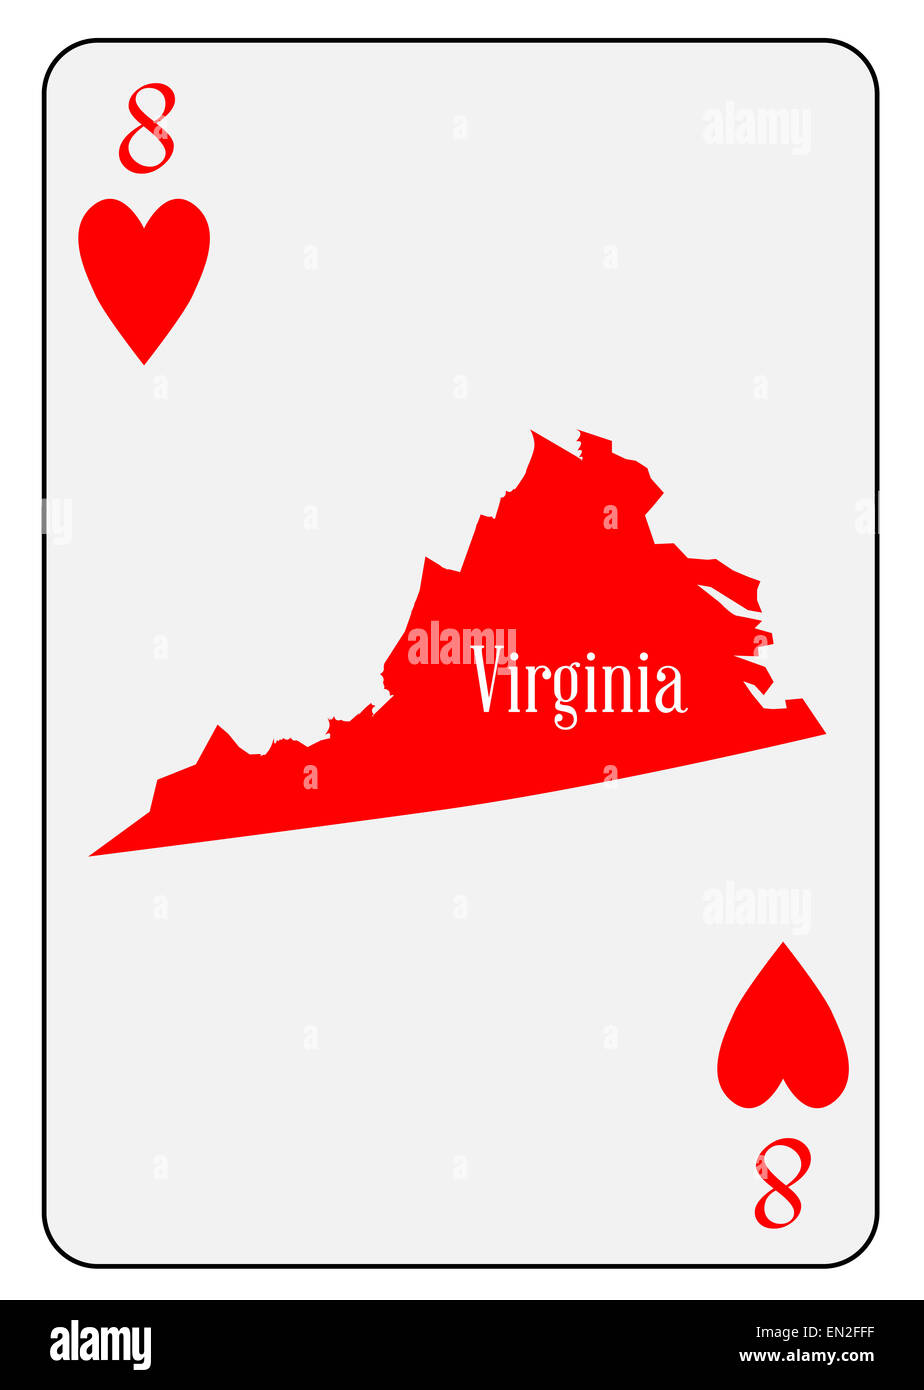 Outline Map Of Virginia.Outline Map Of Virginia And Used As The 8 Of Hearts Motif In A Stock